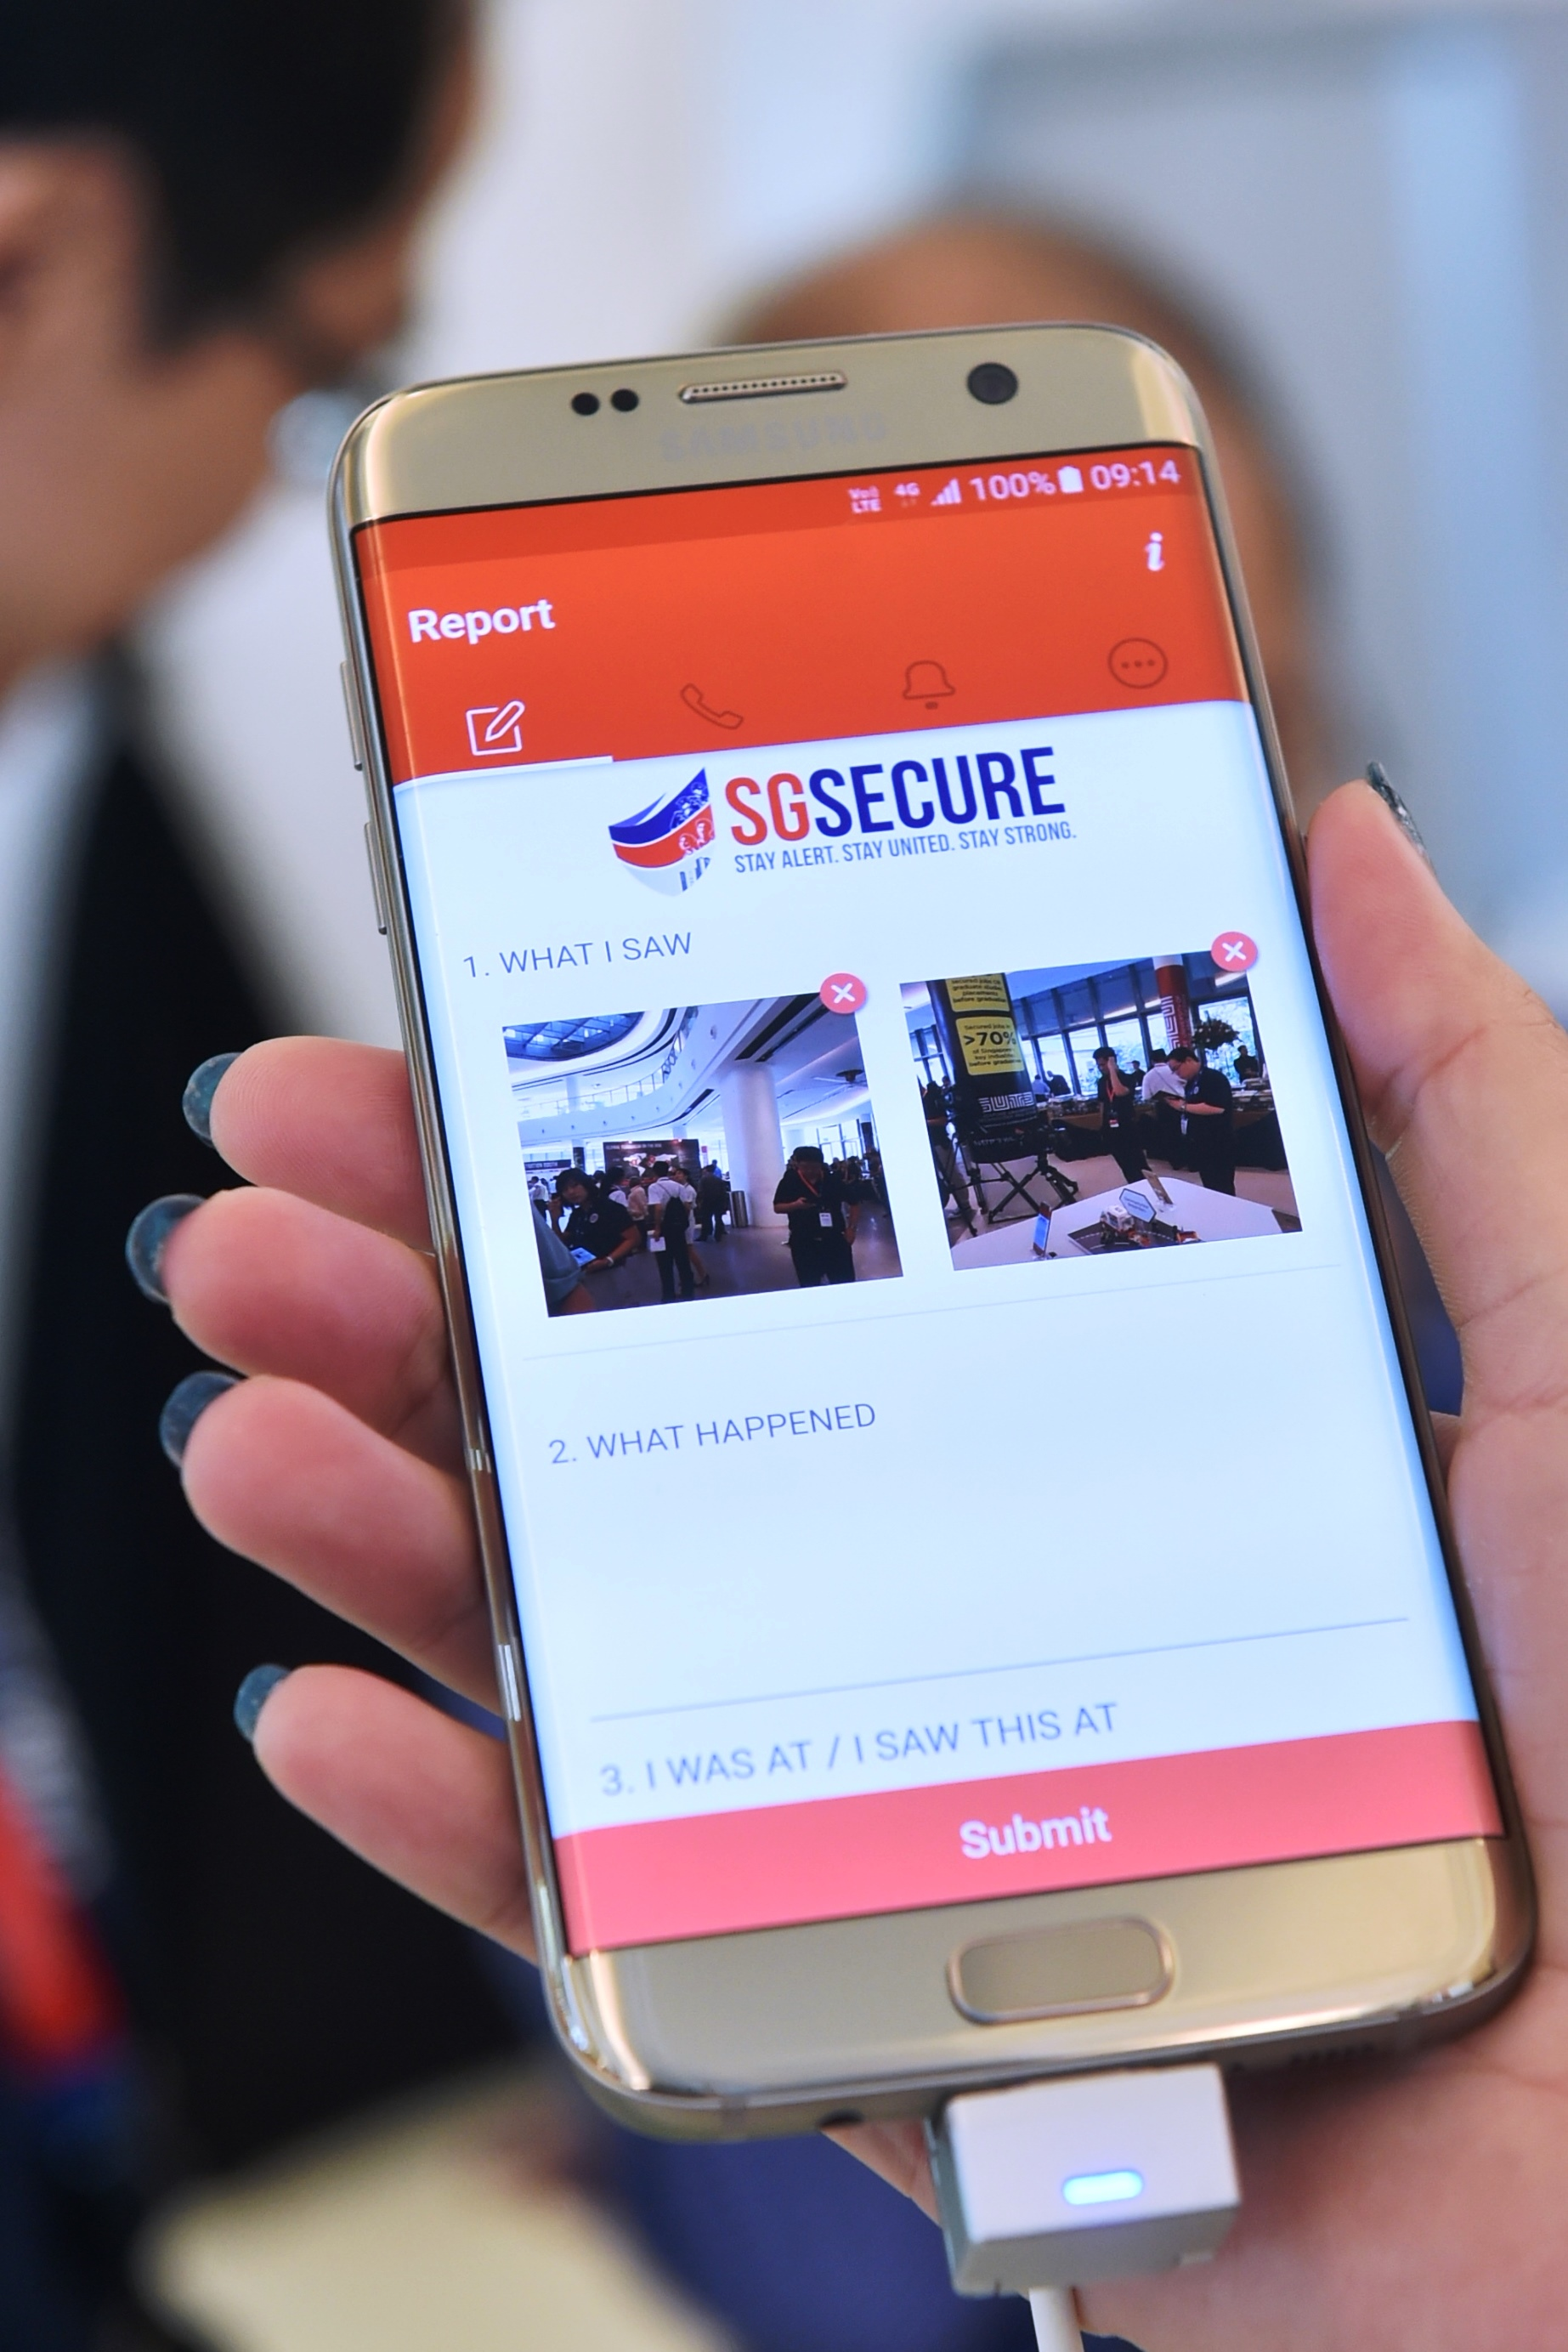 A total of 843,000 devices now have the SGsecure app